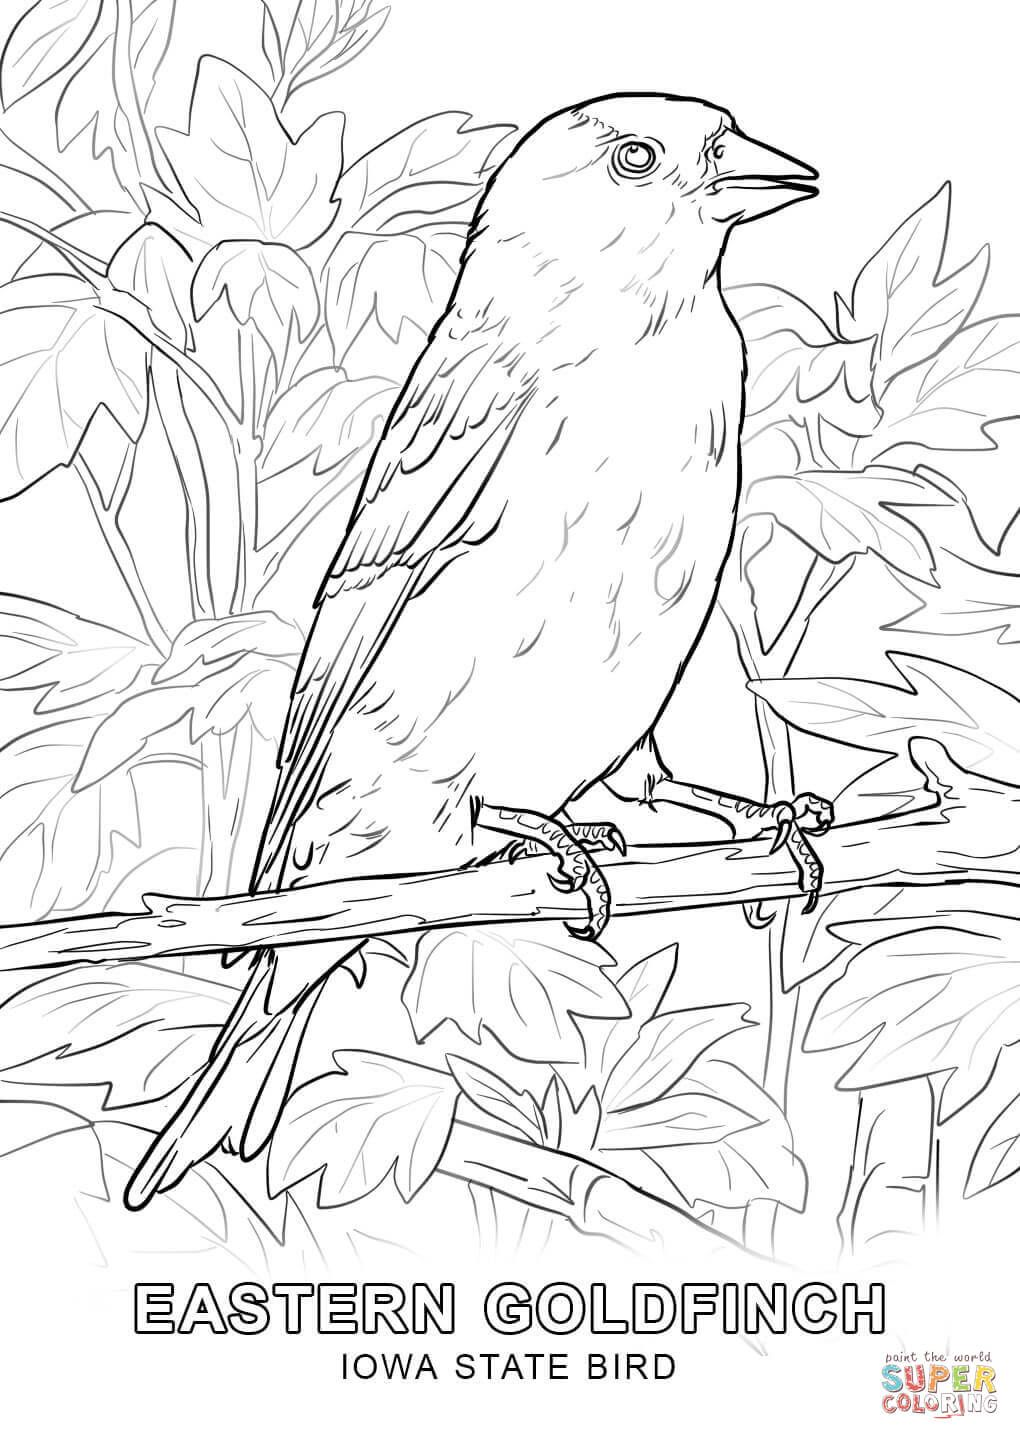 iowa state bird eastern goldfinch coloring page state bird iowa